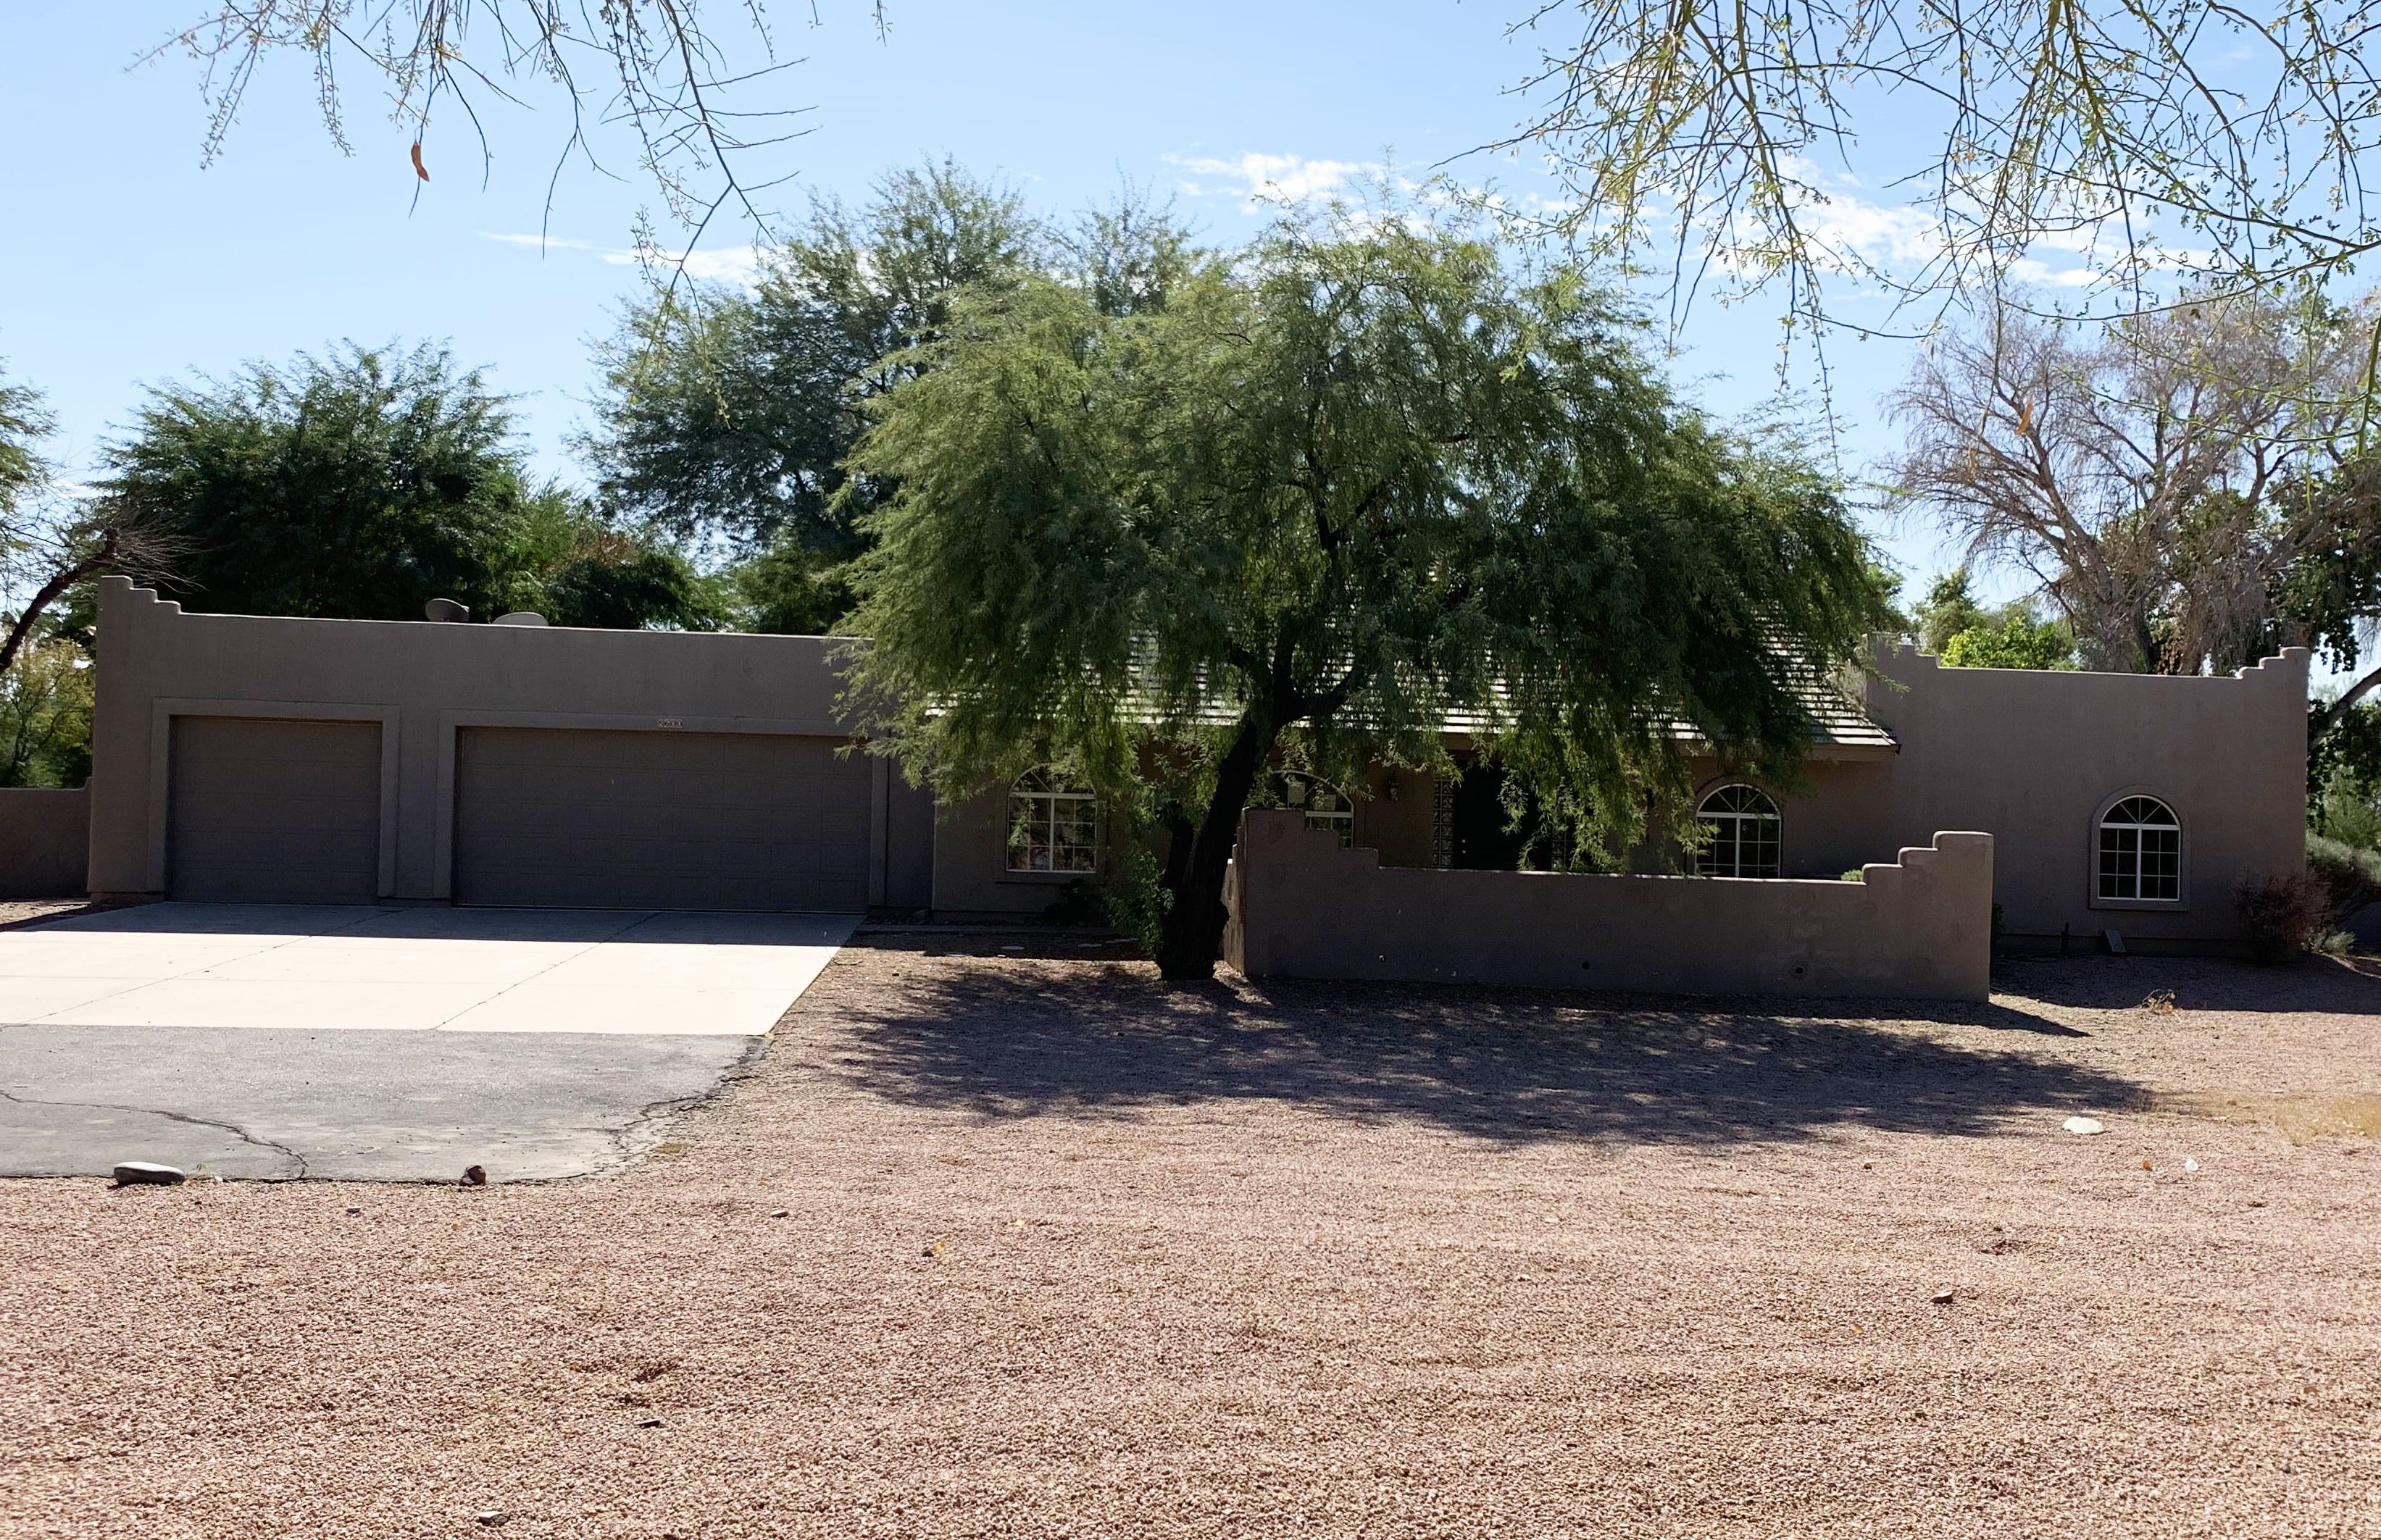 Live Auction: Single Family Home (8600 S. 52nd Drive) In Laveen, Arizona